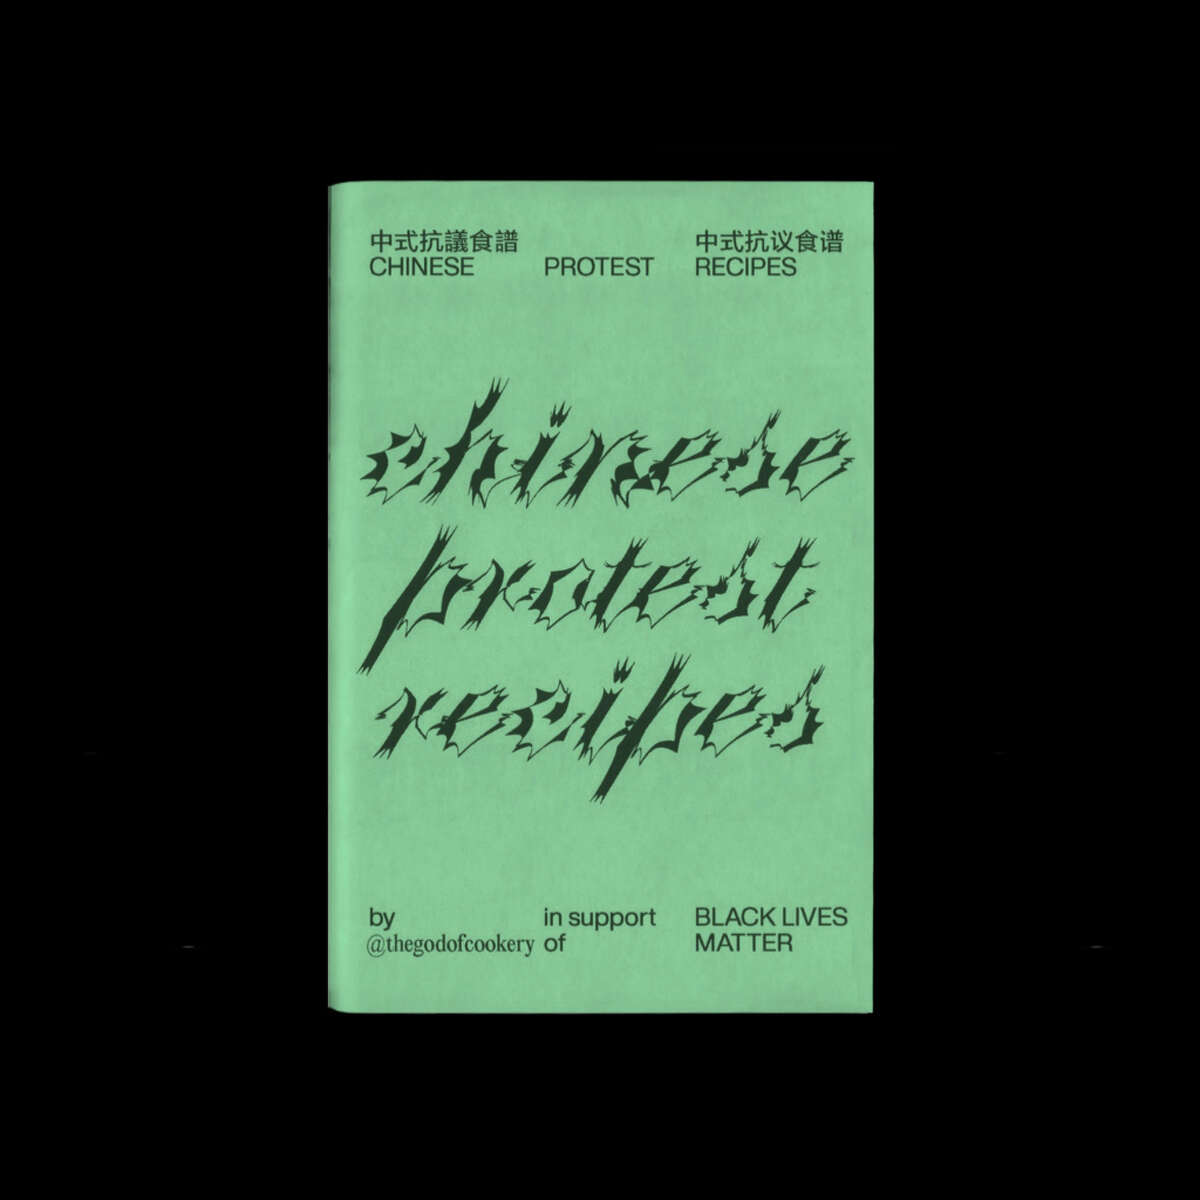 """""""Chinese Protest Recipes"""" is an antiracist zine from chef and activist Clarence Kwan, who insists food and cooking are political."""